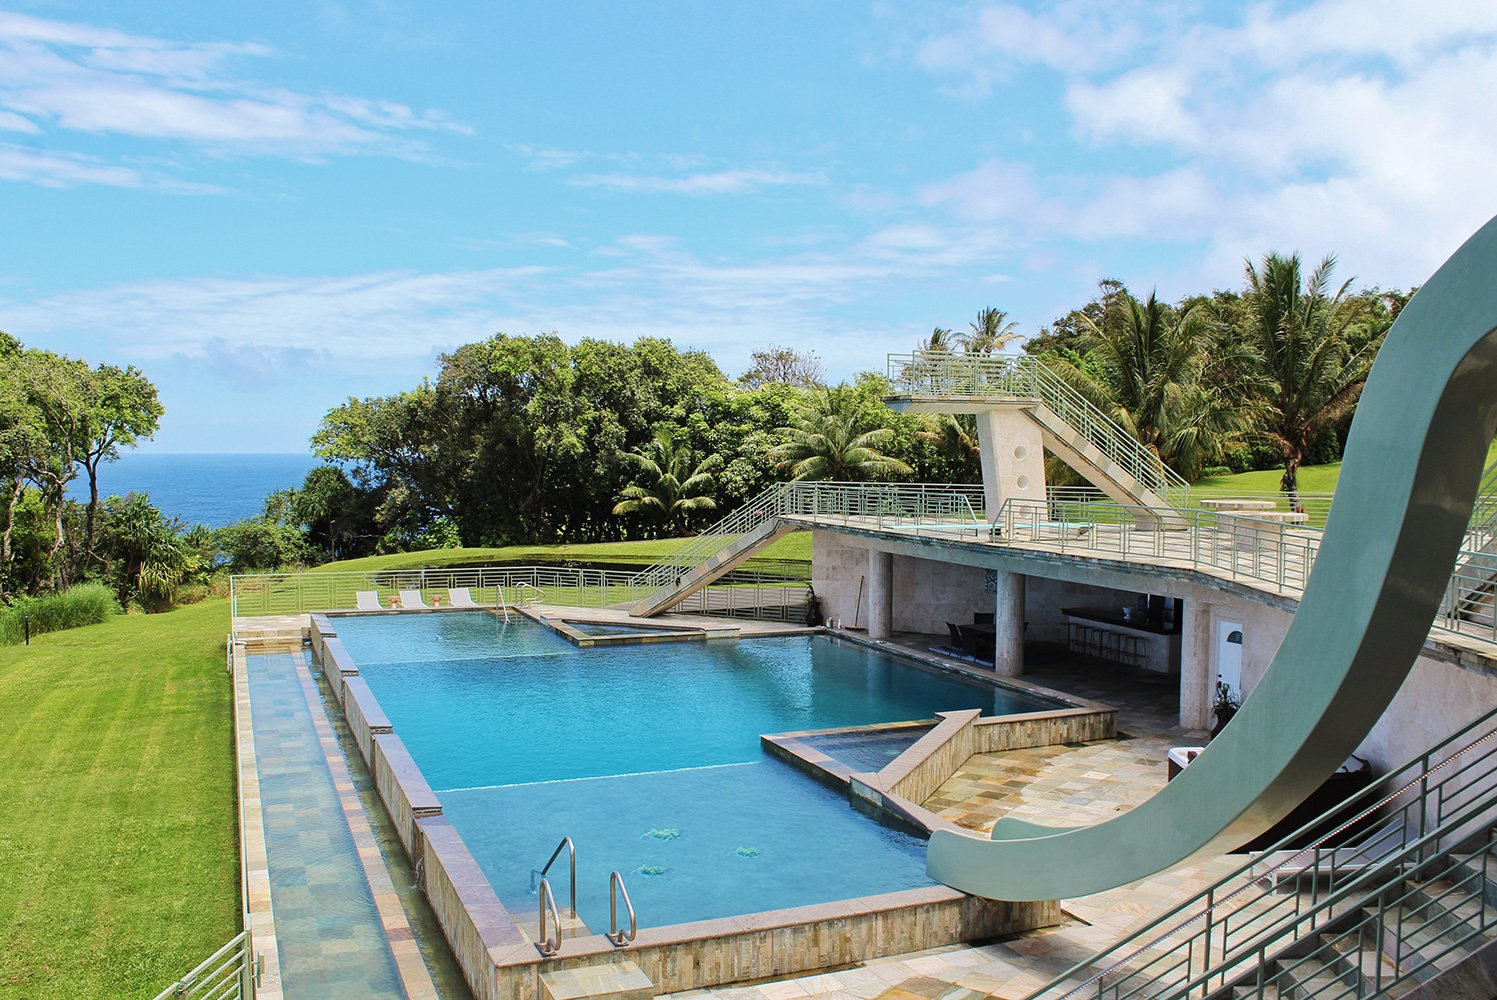 The aptly named Waterfalling Estate is an aquatic paradise featuring a 25-meter pool with a high diving platform, springboard, and waterslide.